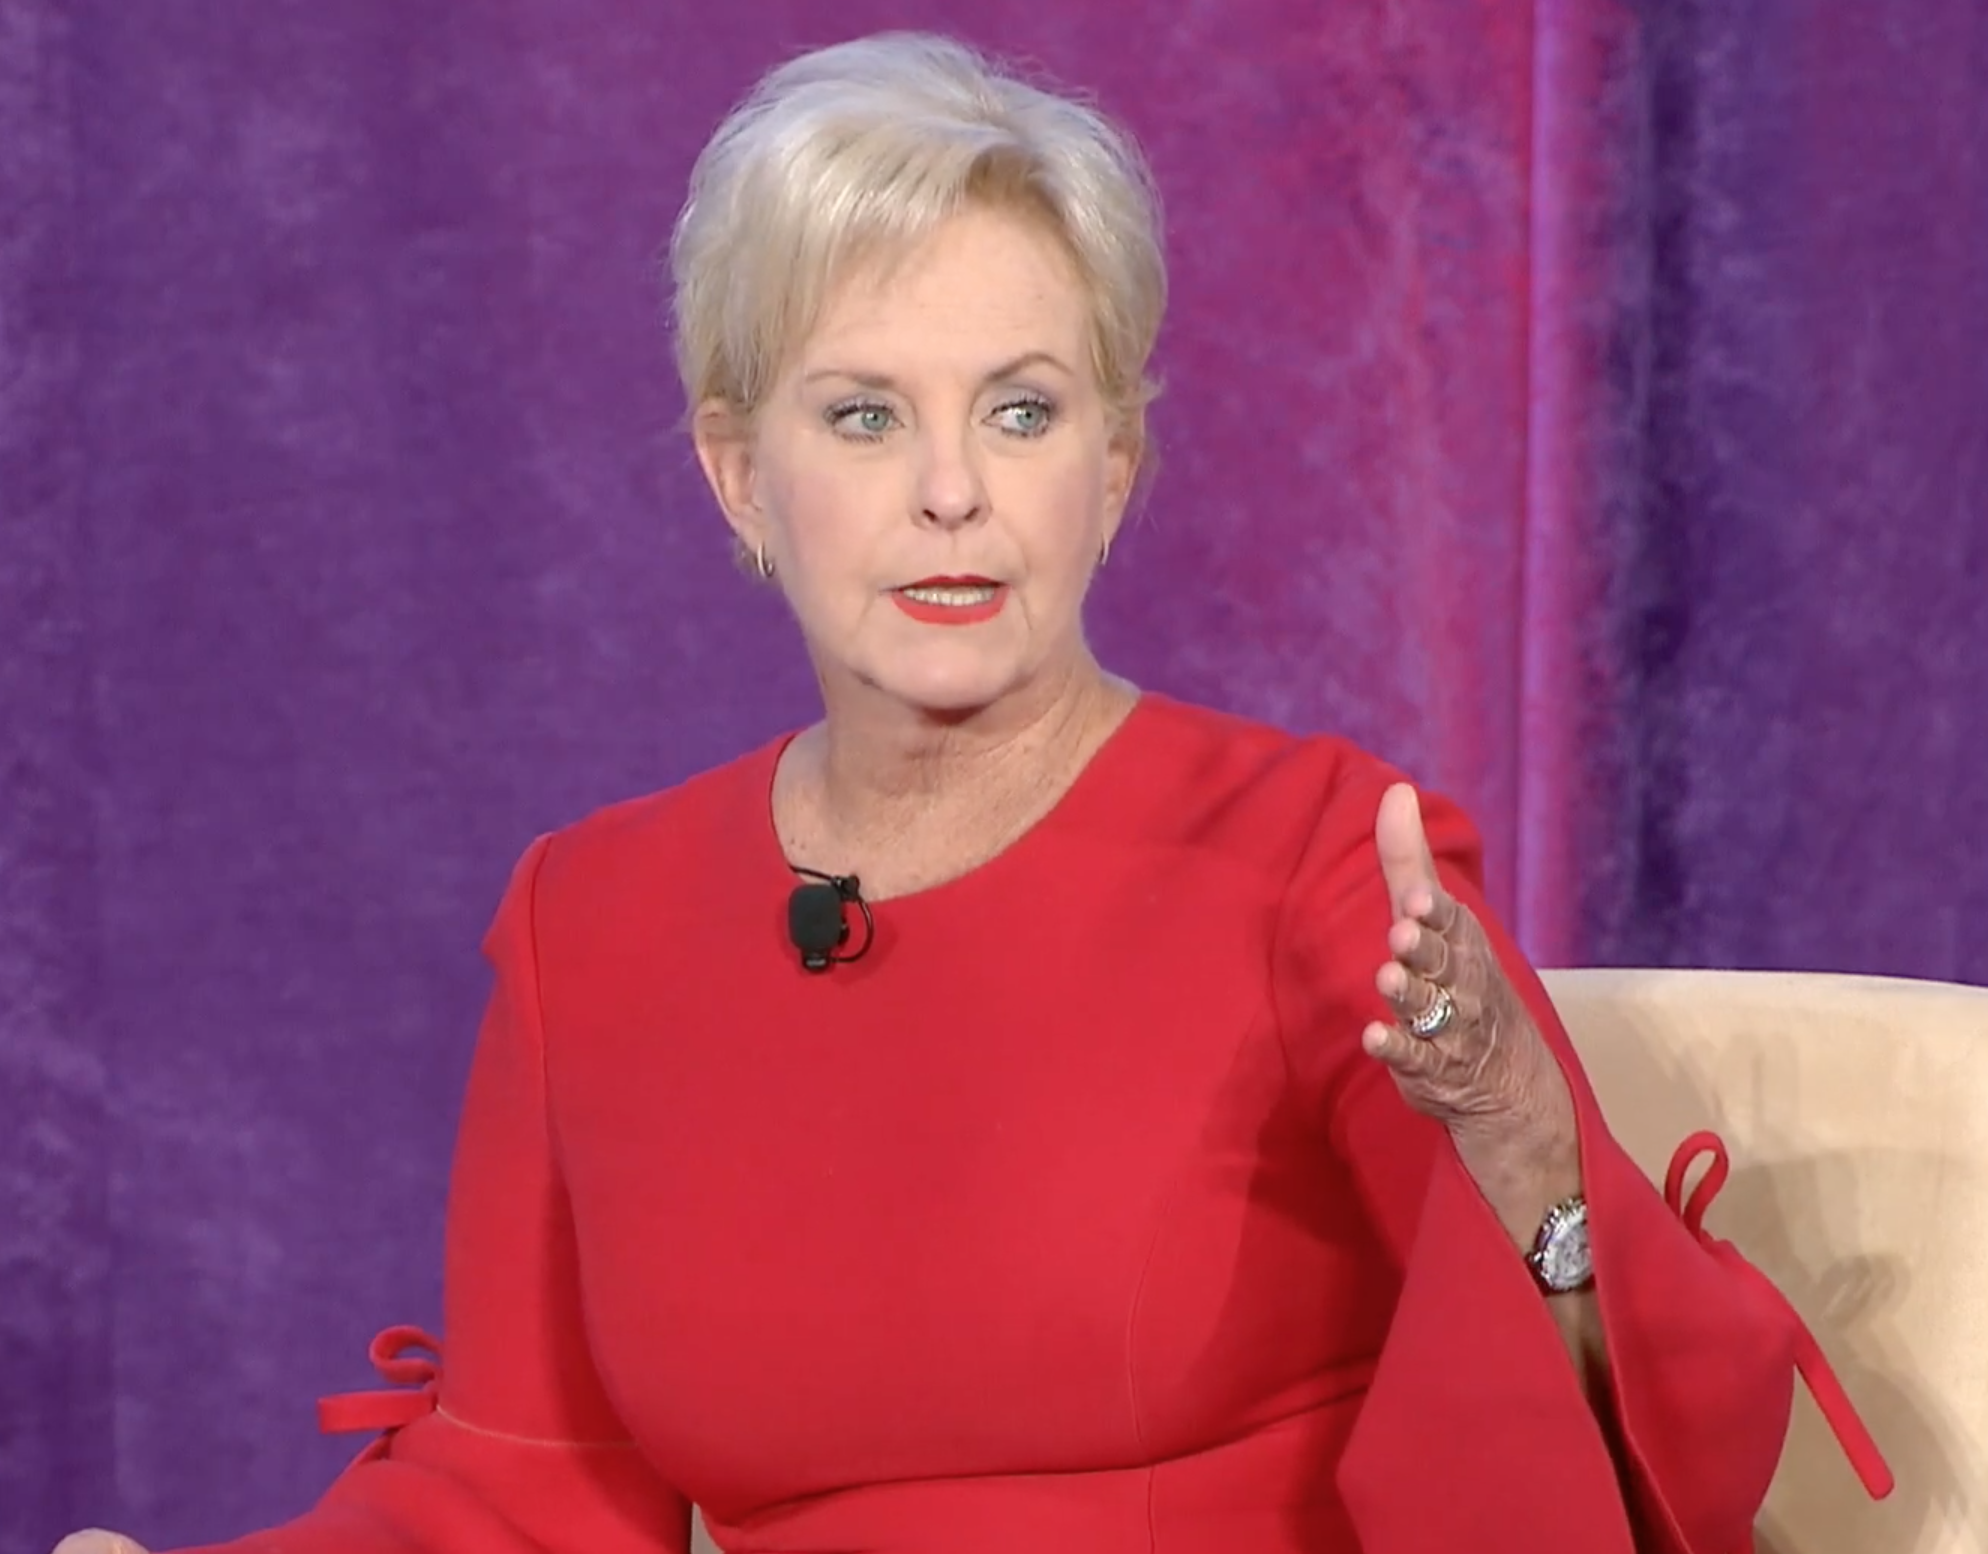 Photo of Cindy McCain seated.